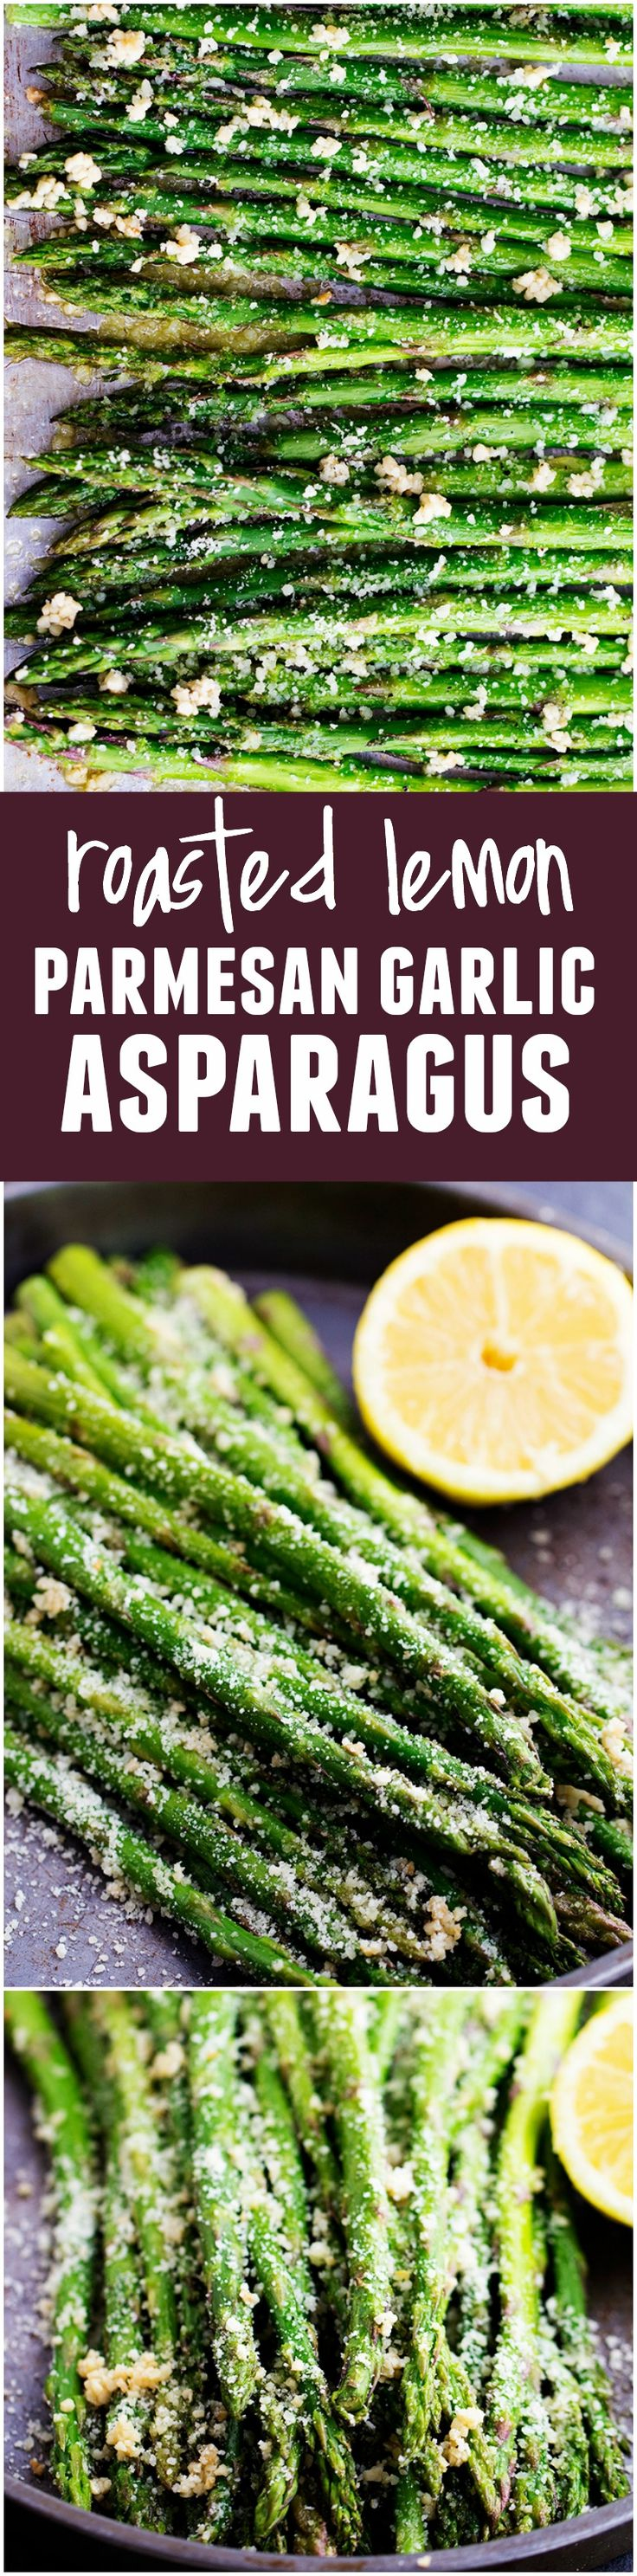 This Lemon Parmesan Garlic Asparagus is full of such amazing flavor! This is one of the BEST sides that you will make!: